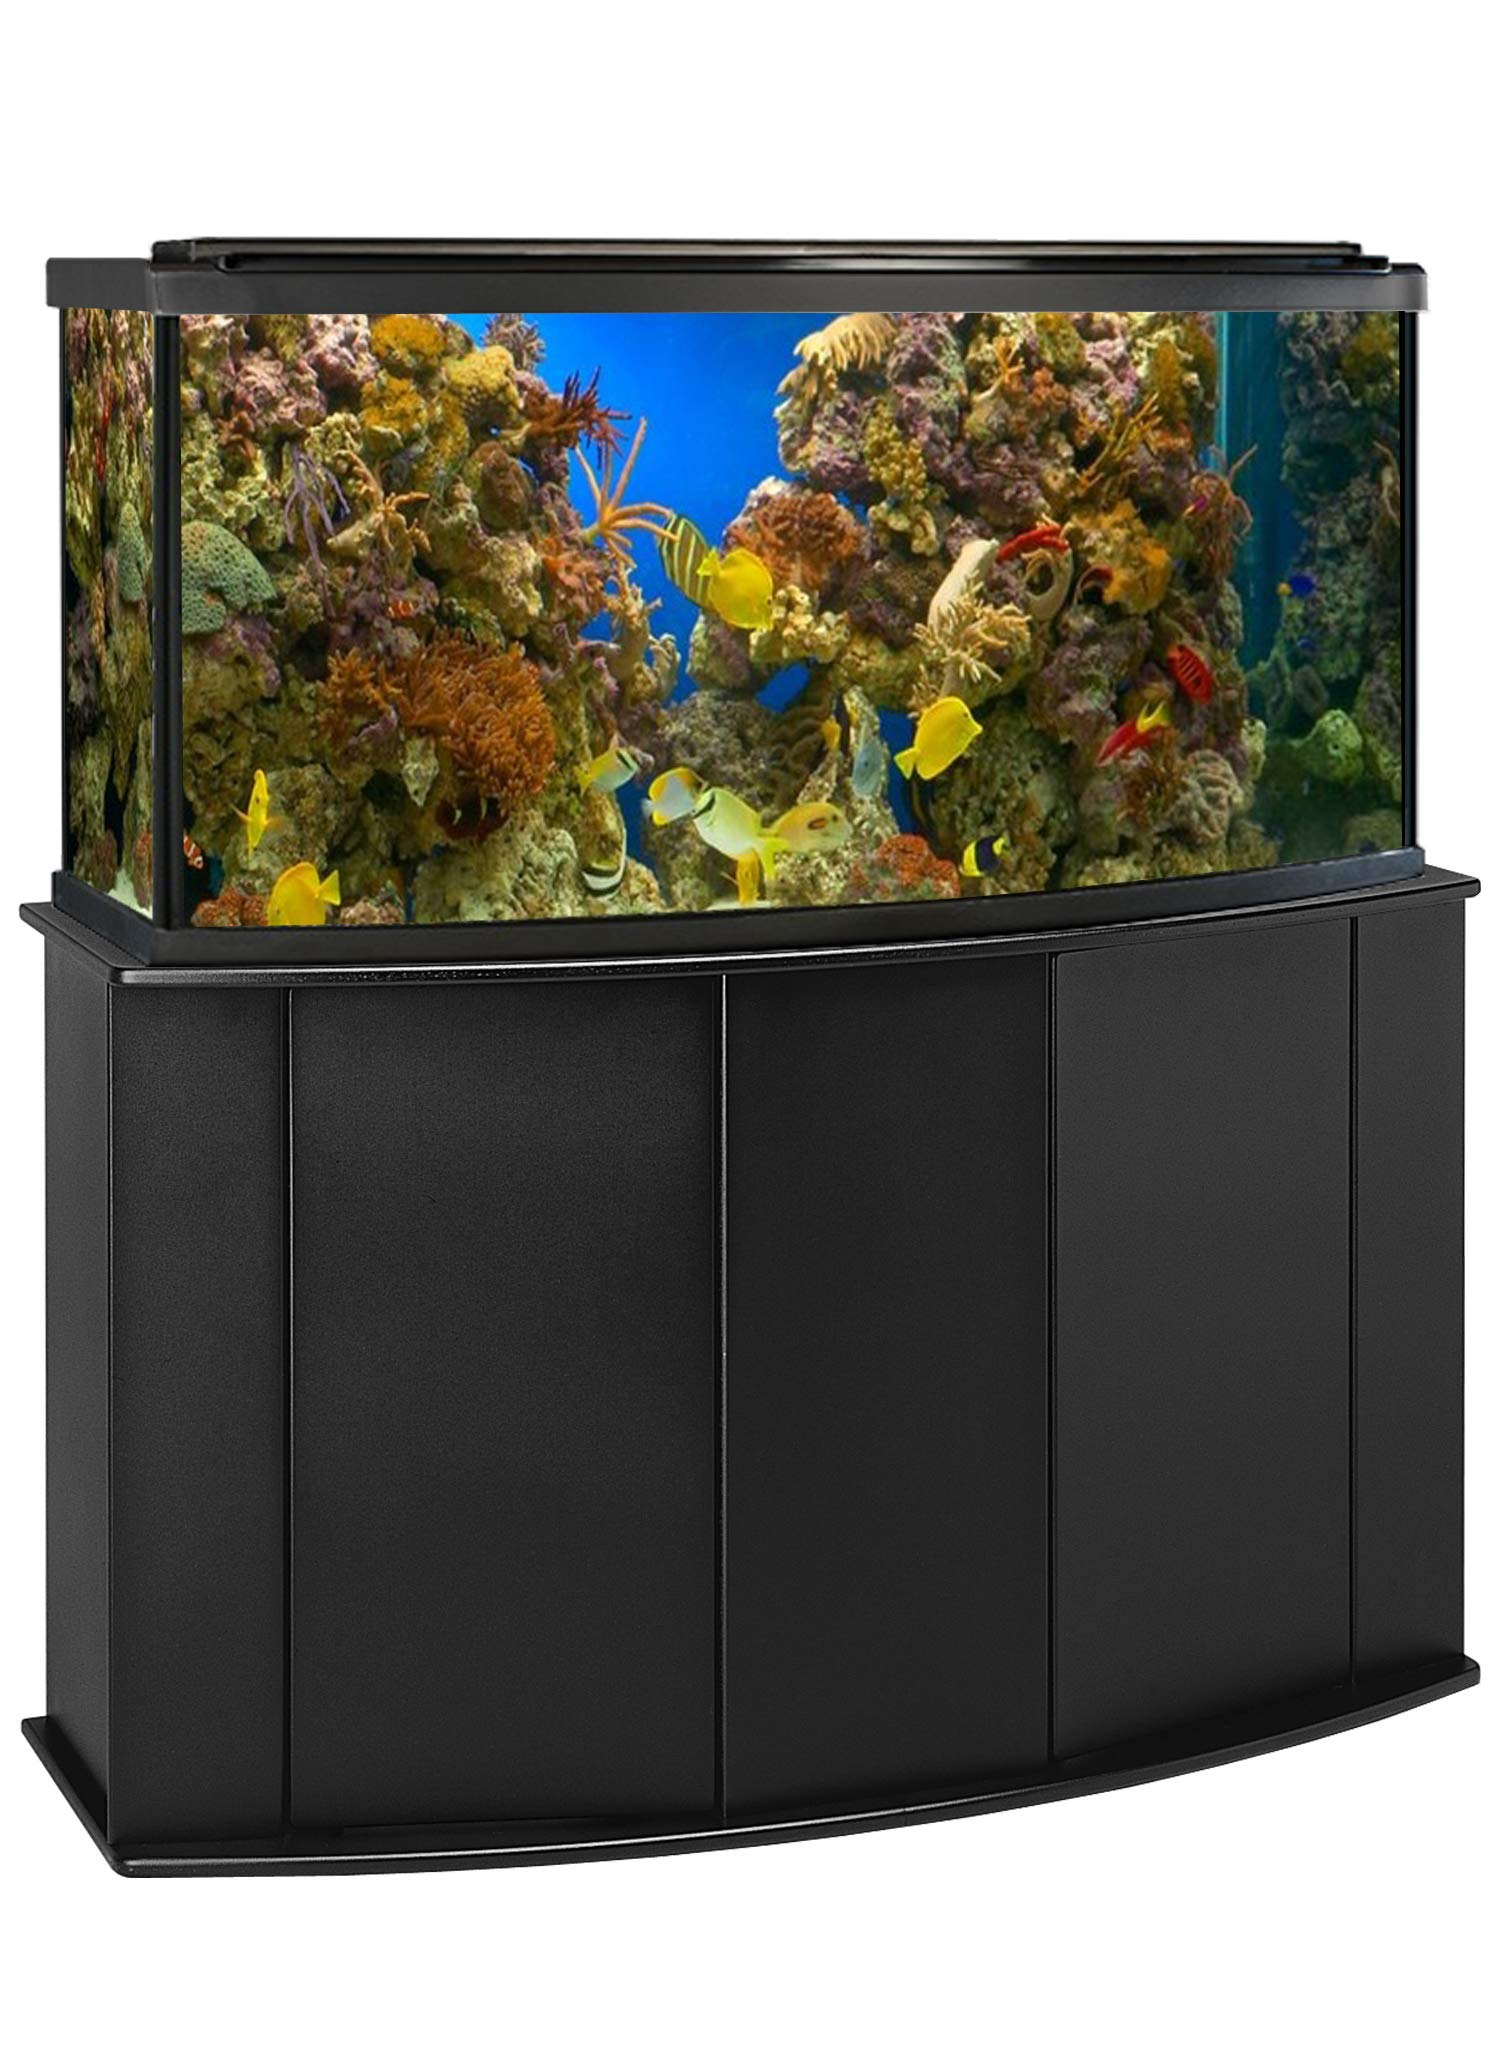 Aquatic Fundamentals AMZ-16721 Aquarium Stand, Bow Front, Black by Aquatic Fundamentals